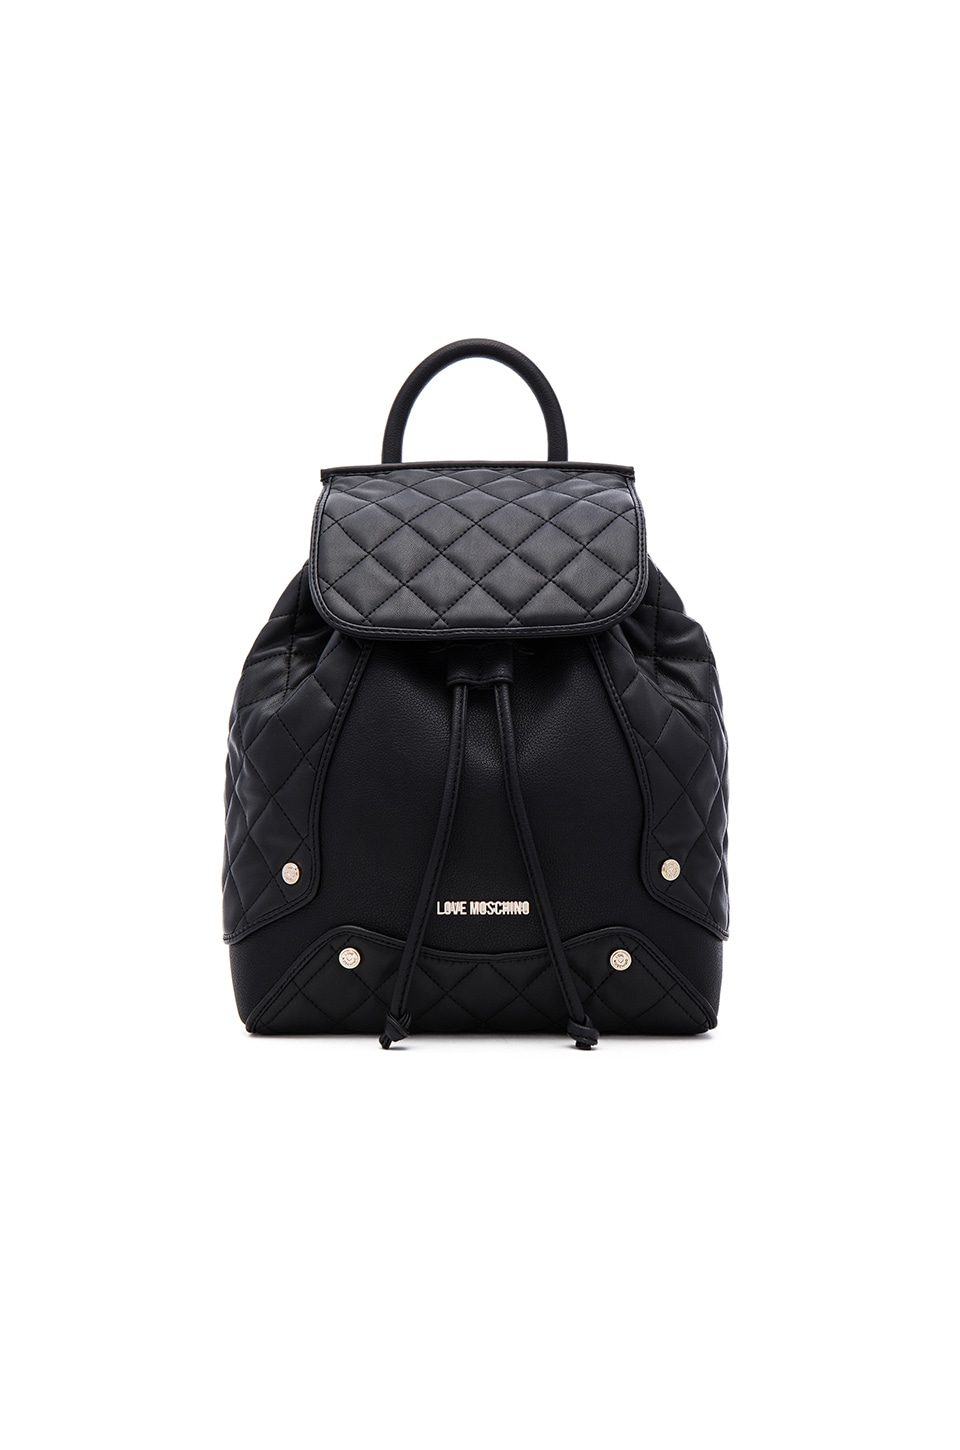 Love Moschino Fashion Quilted Backpack in Black